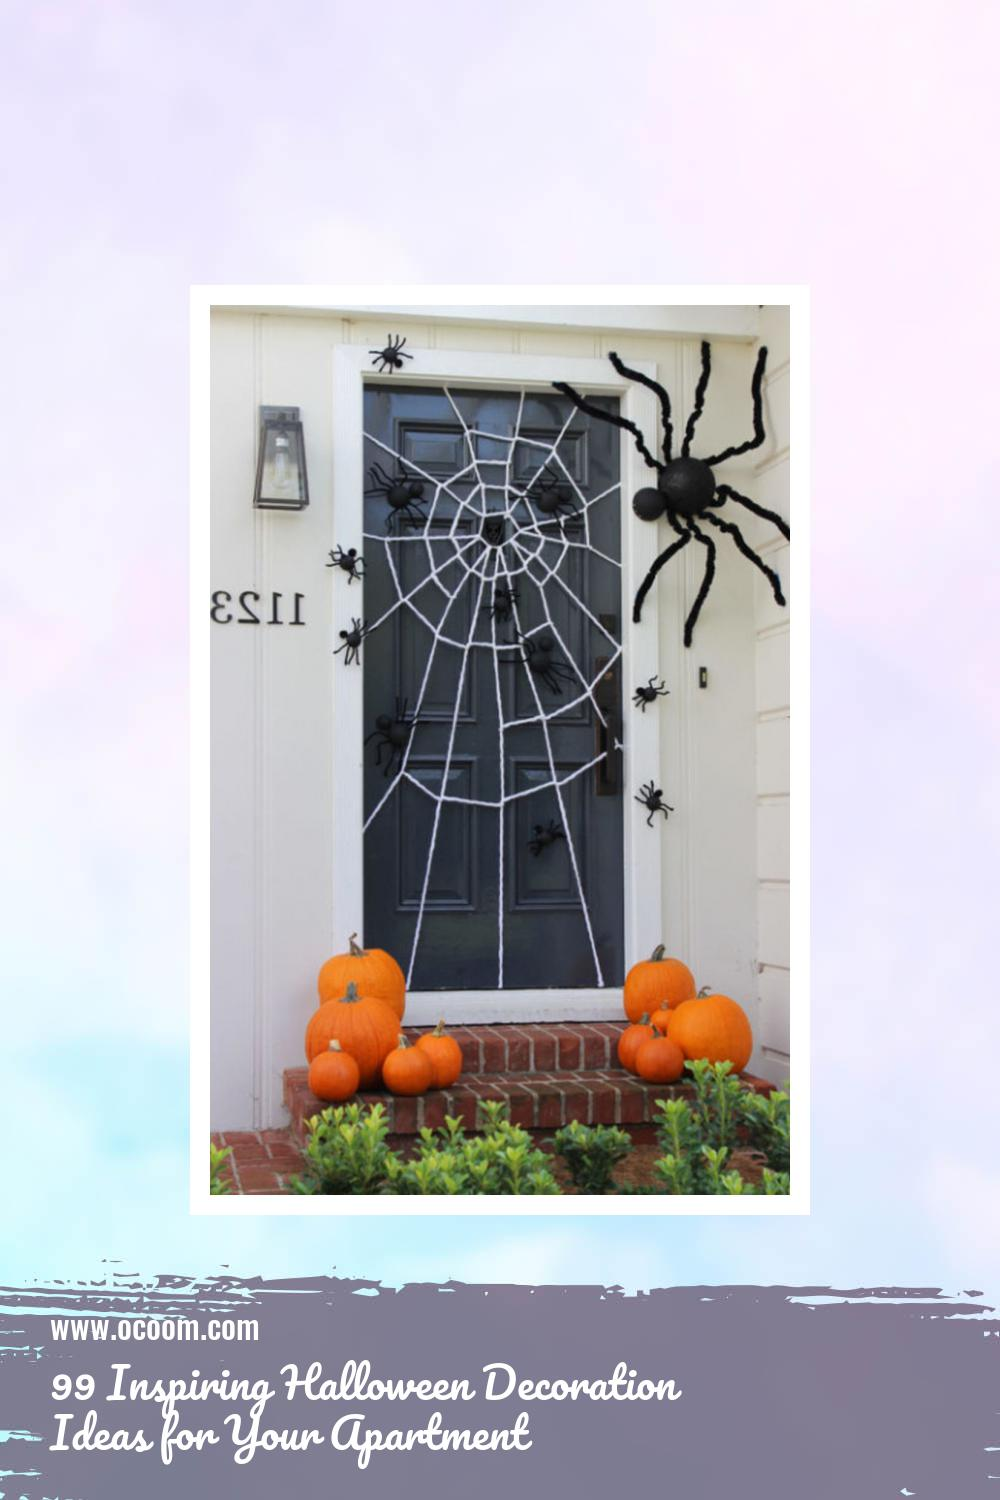 99 Inspiring Halloween Decoration Ideas for Your Apartment 59